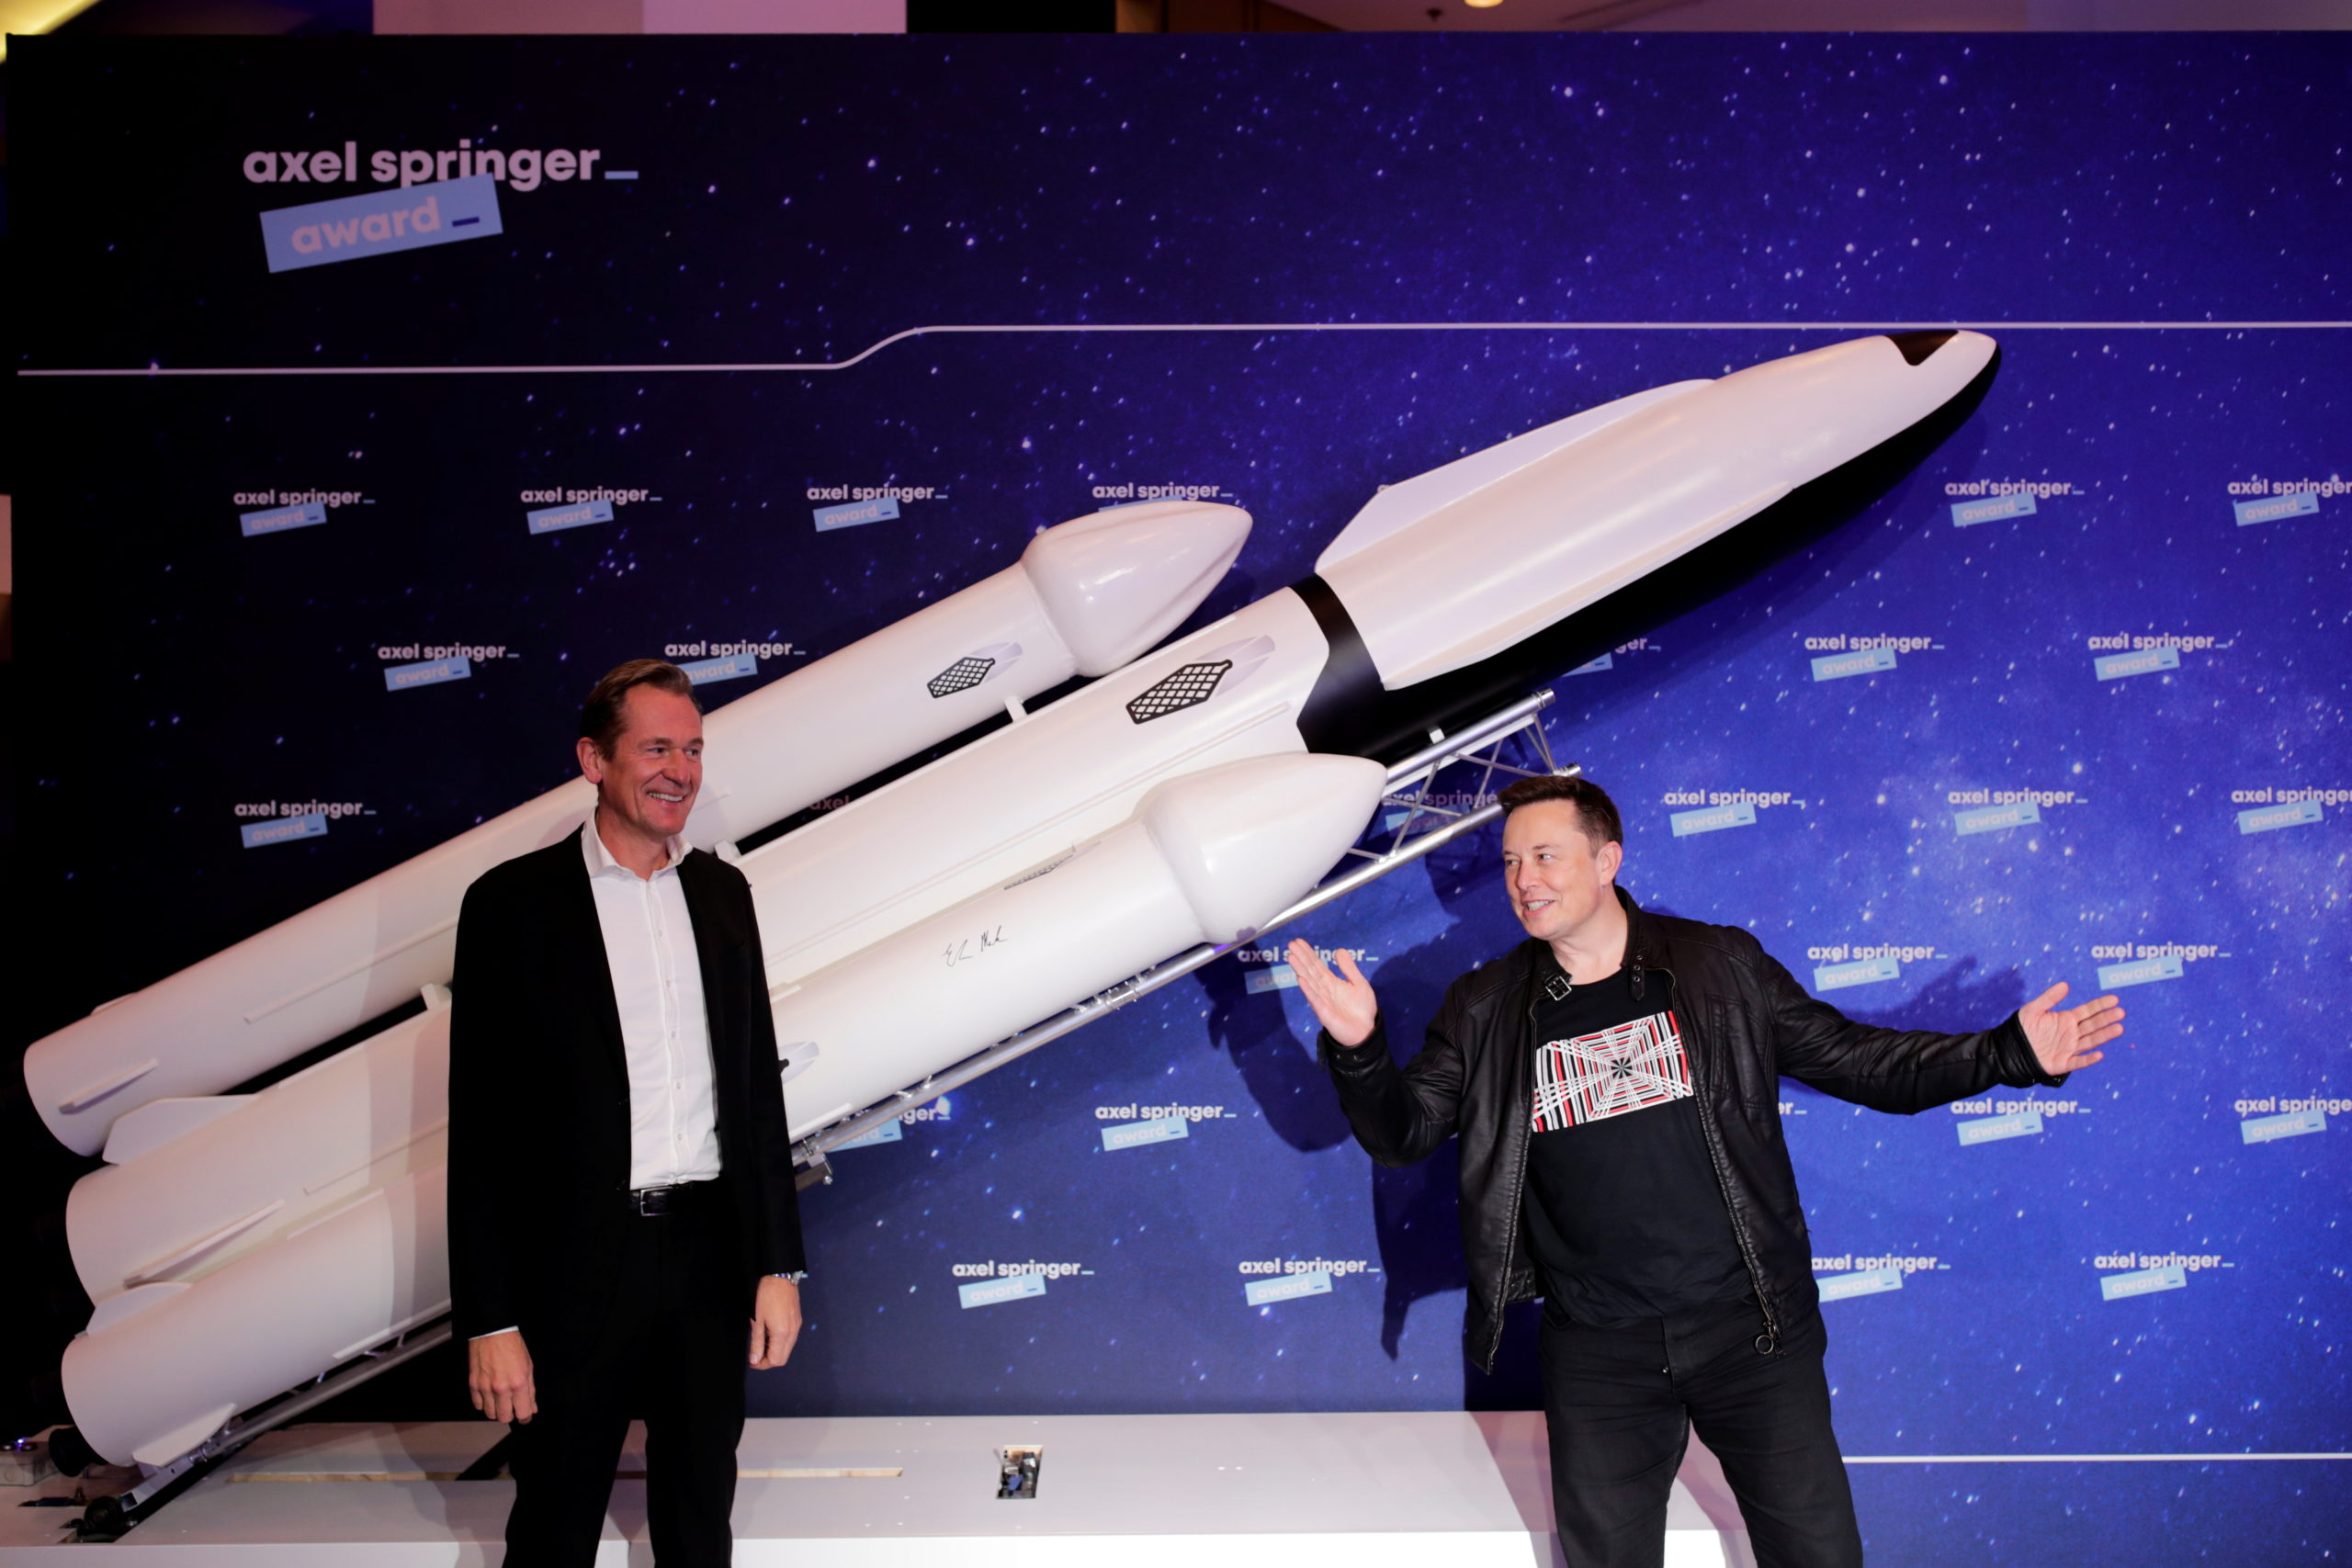 SpaceX owner and Tesla CEO Elon Musk poses on the red carpet of the Axel Springer Award 2020 on December 01, 2020 in Berlin, Germany. (Photo by Hannibal Hanschke-Pool/Getty Images)